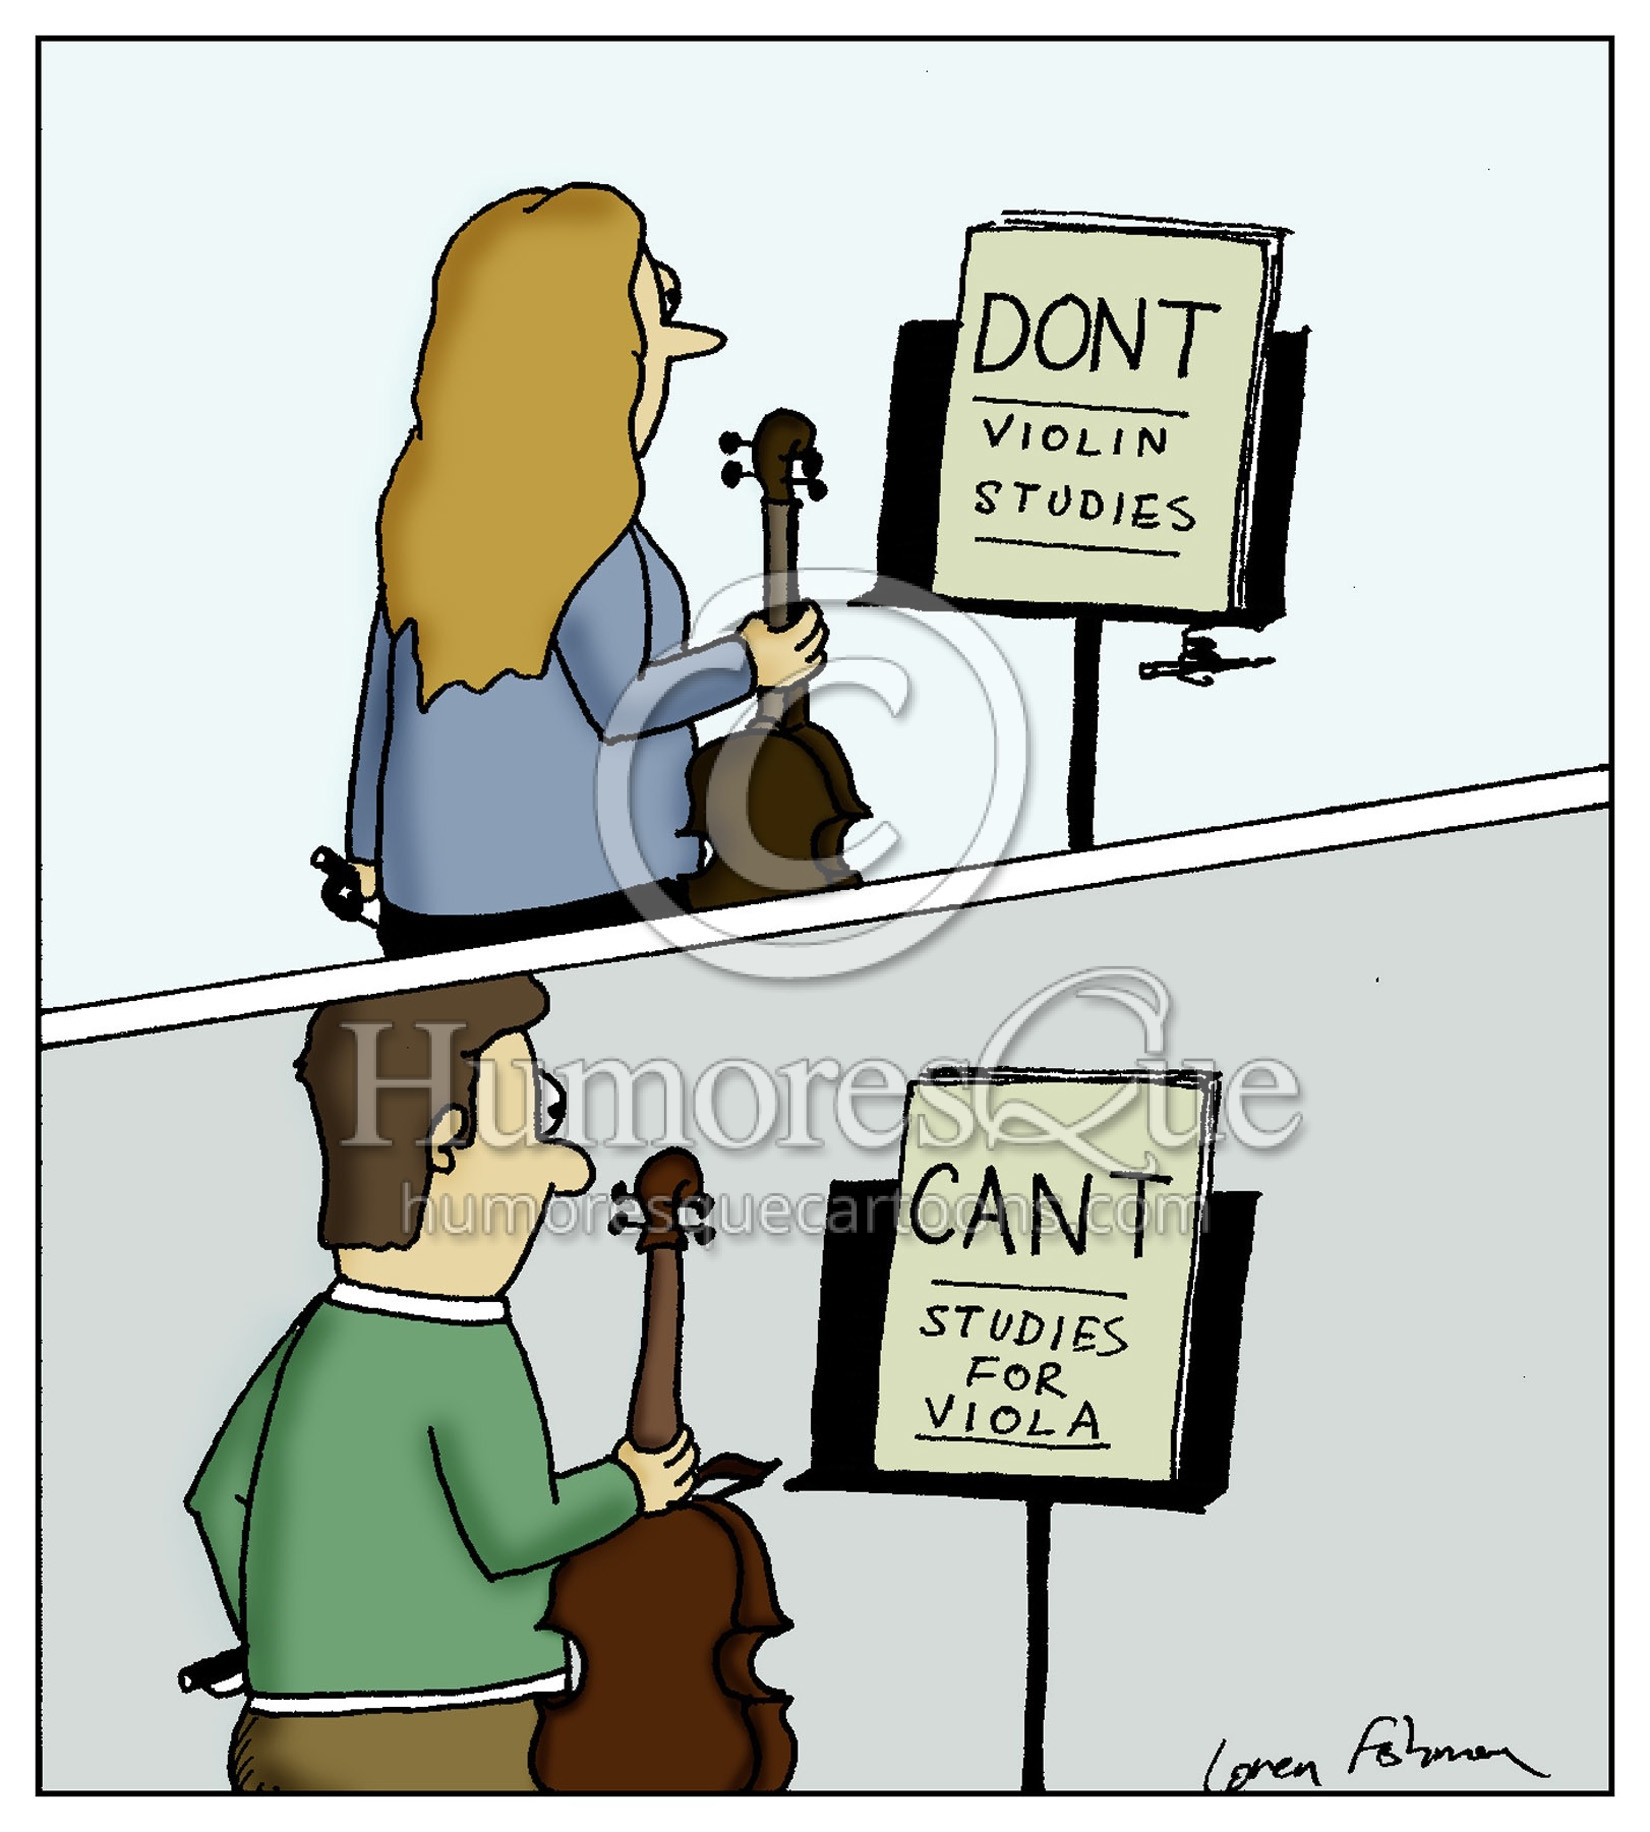 dont violin etudes and cant viola etudes viola joke cartoon